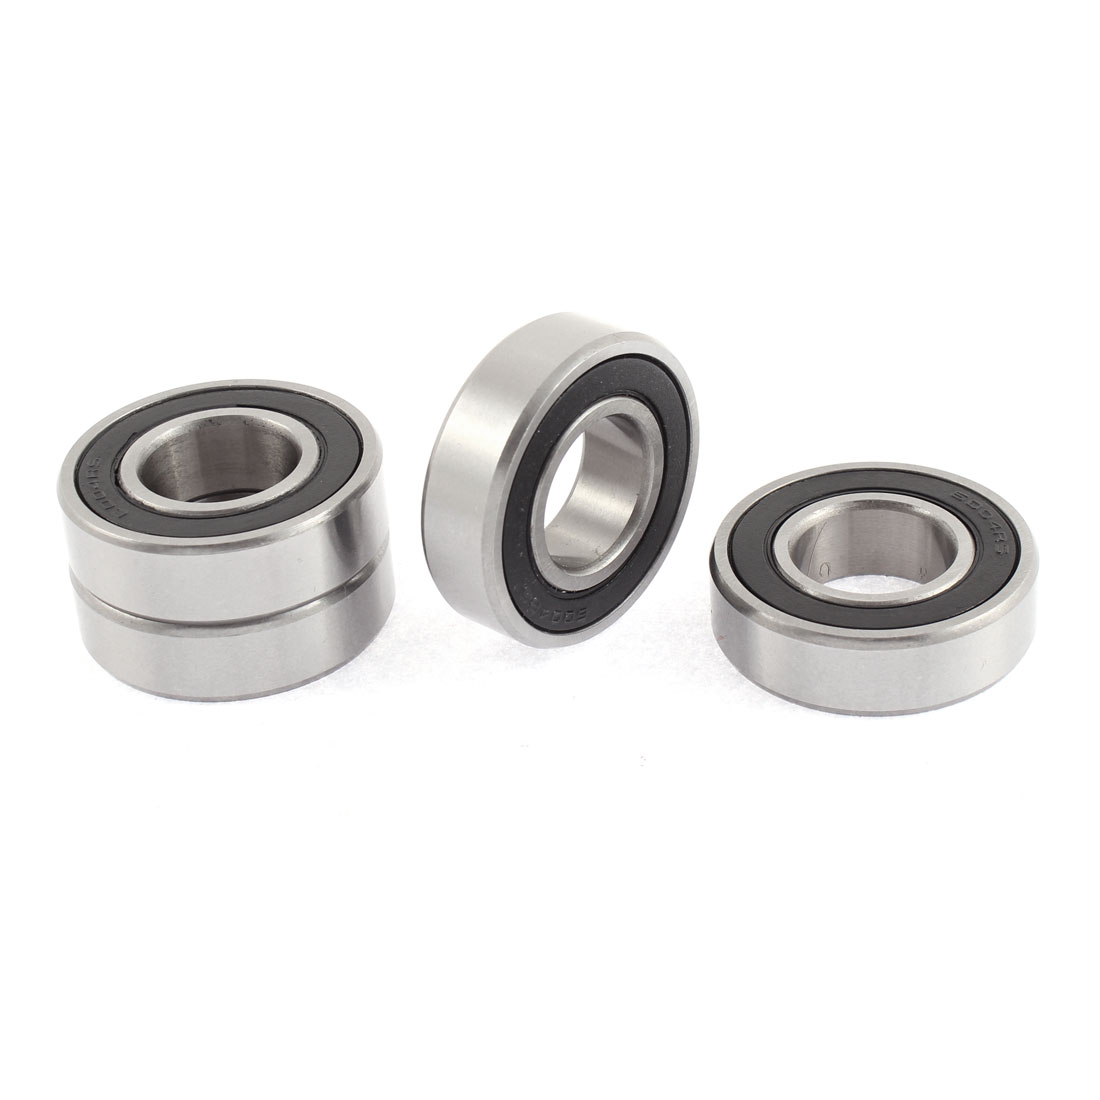 6004RS 42mm x 20mm x 11mm Rubber Sealed Groove Ball Bearings Silver Tone 4 Pcs